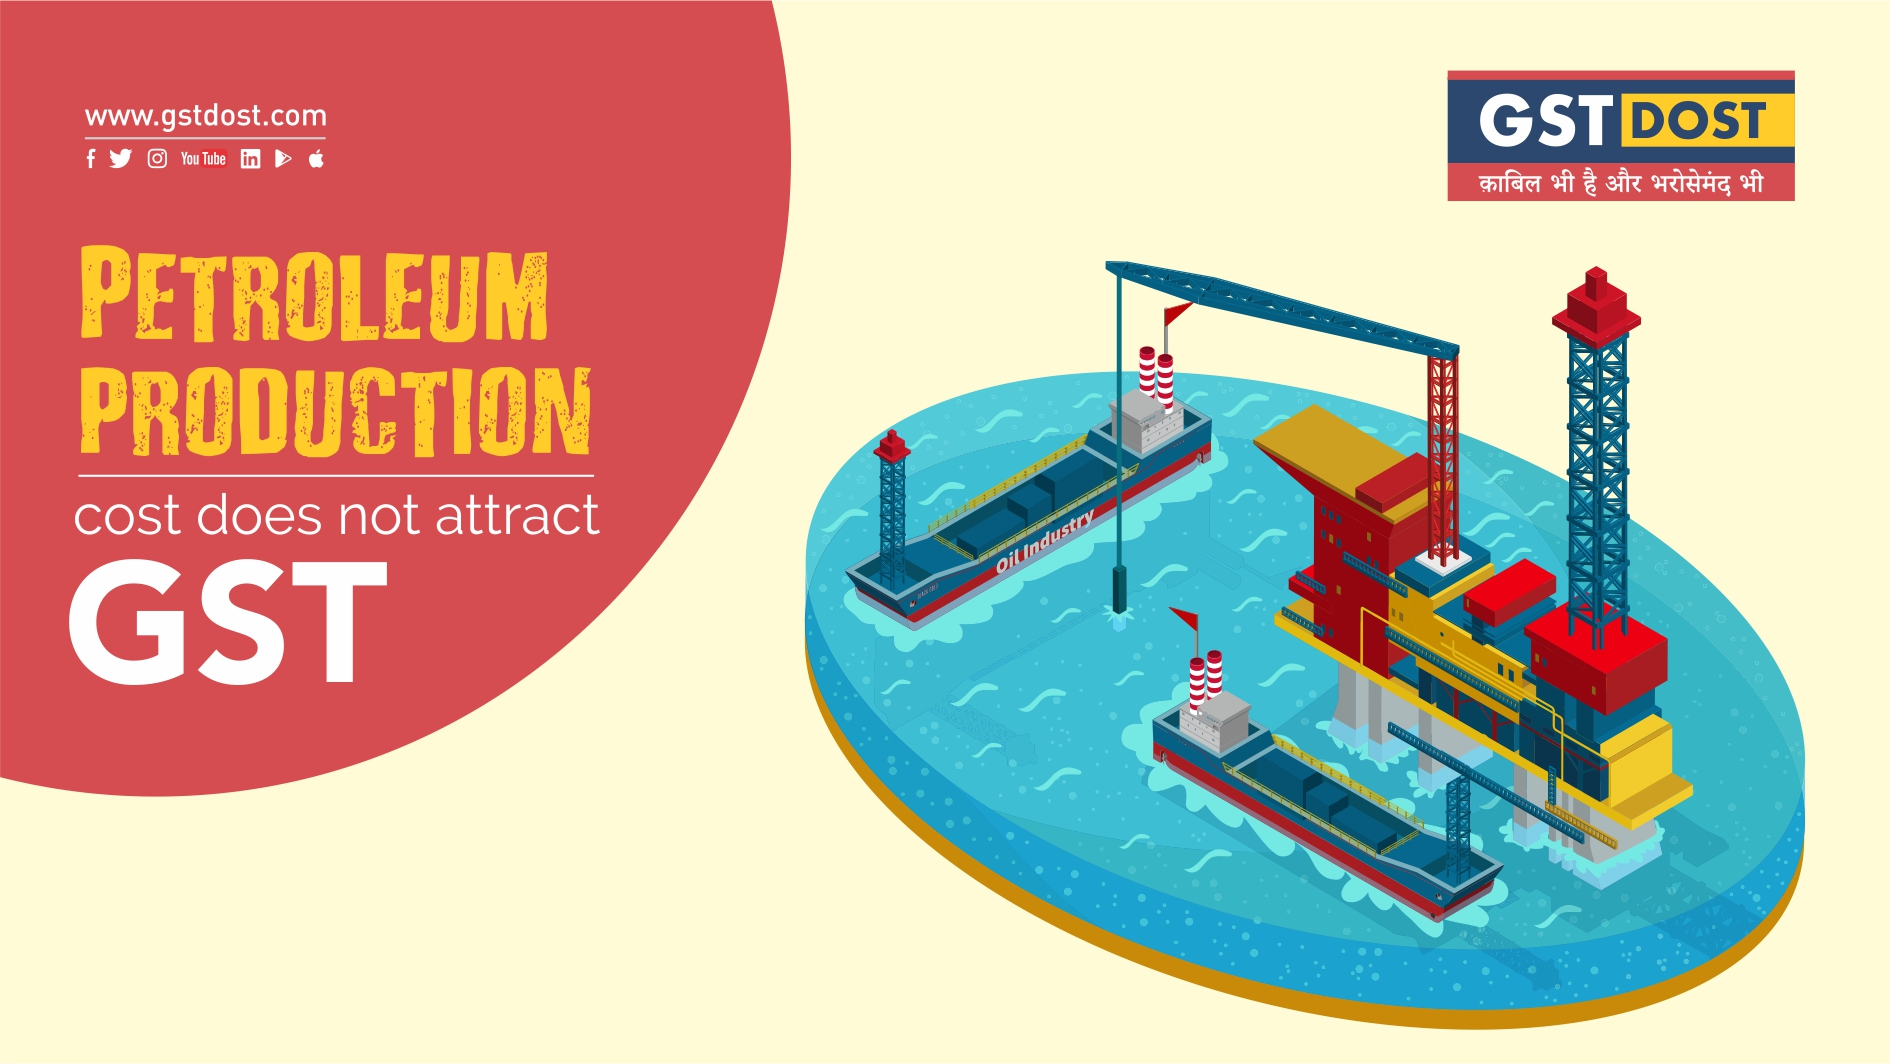 Petroleum production cost does not attract GST